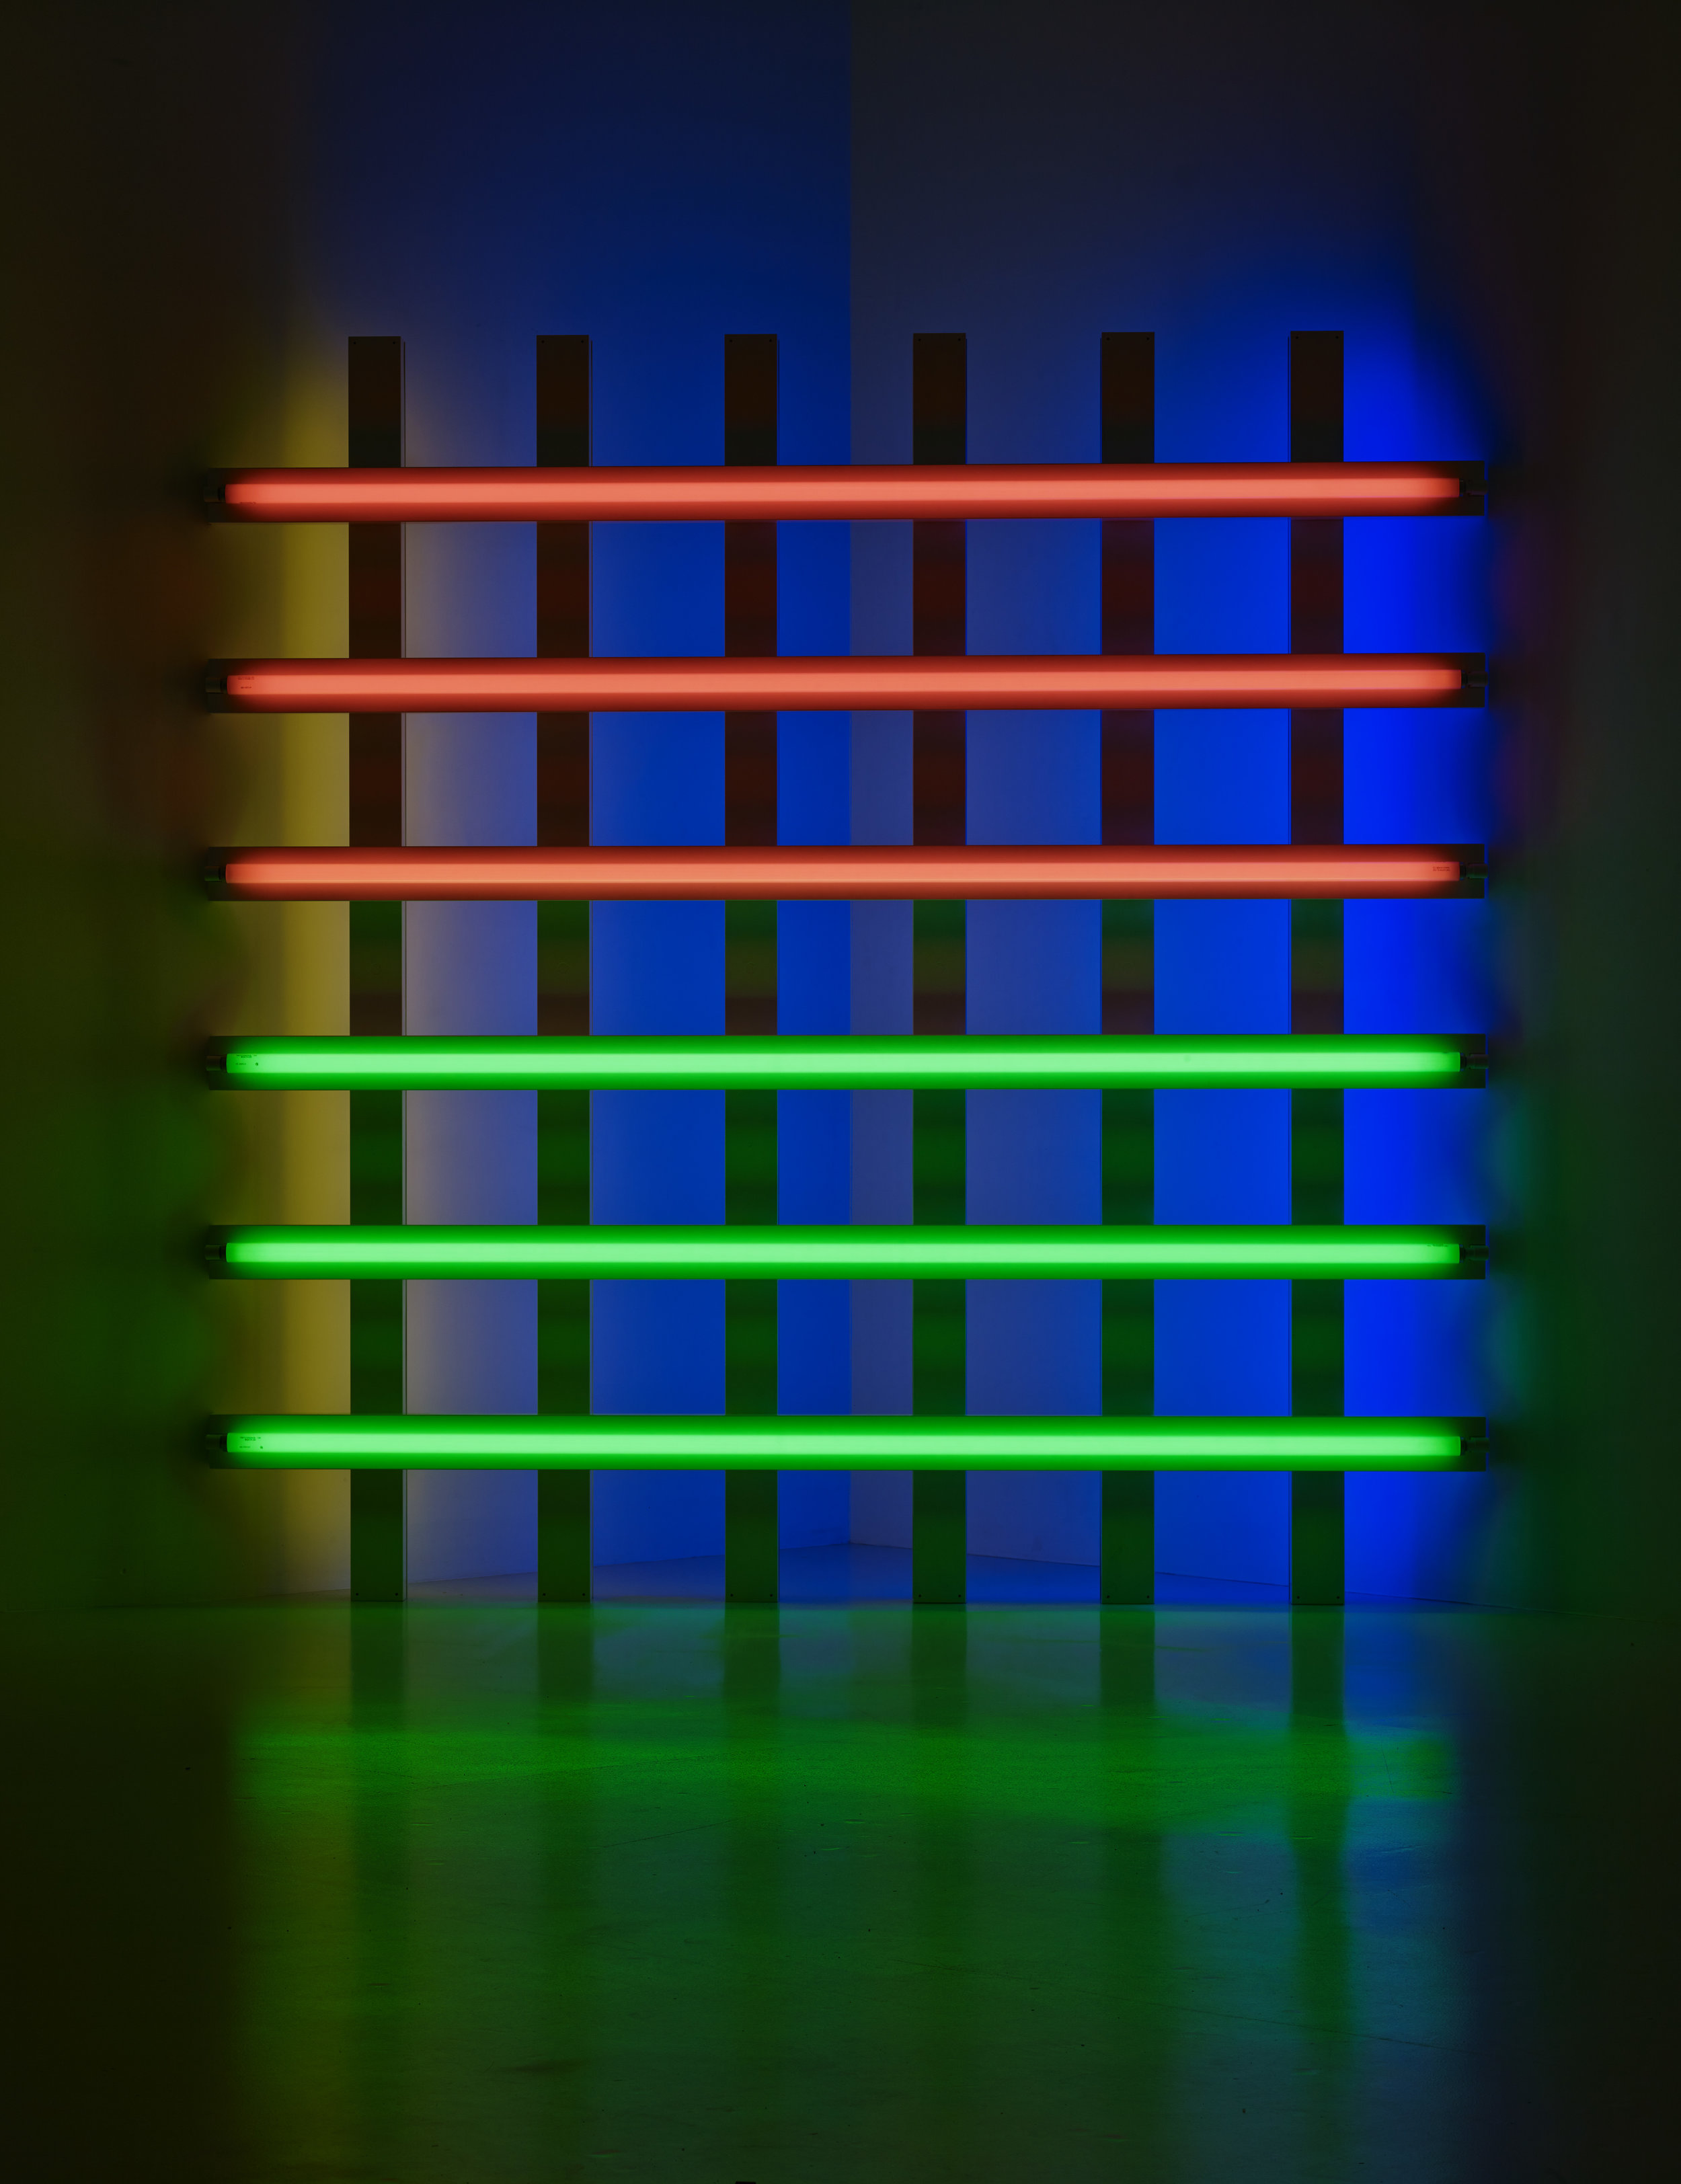 Dan Flavin  Untitled (for you, Leo, in long respect and affection) 1   , 1977  Pink, green, yellow and blue fluorescent light 244.5 x 244.5 x 18.5 cm Collection Fondation Louis Vuitton, Paris. © Adagp, Paris, 2019 Picture: © Louis Vuitton / Jérémie Souteyrat